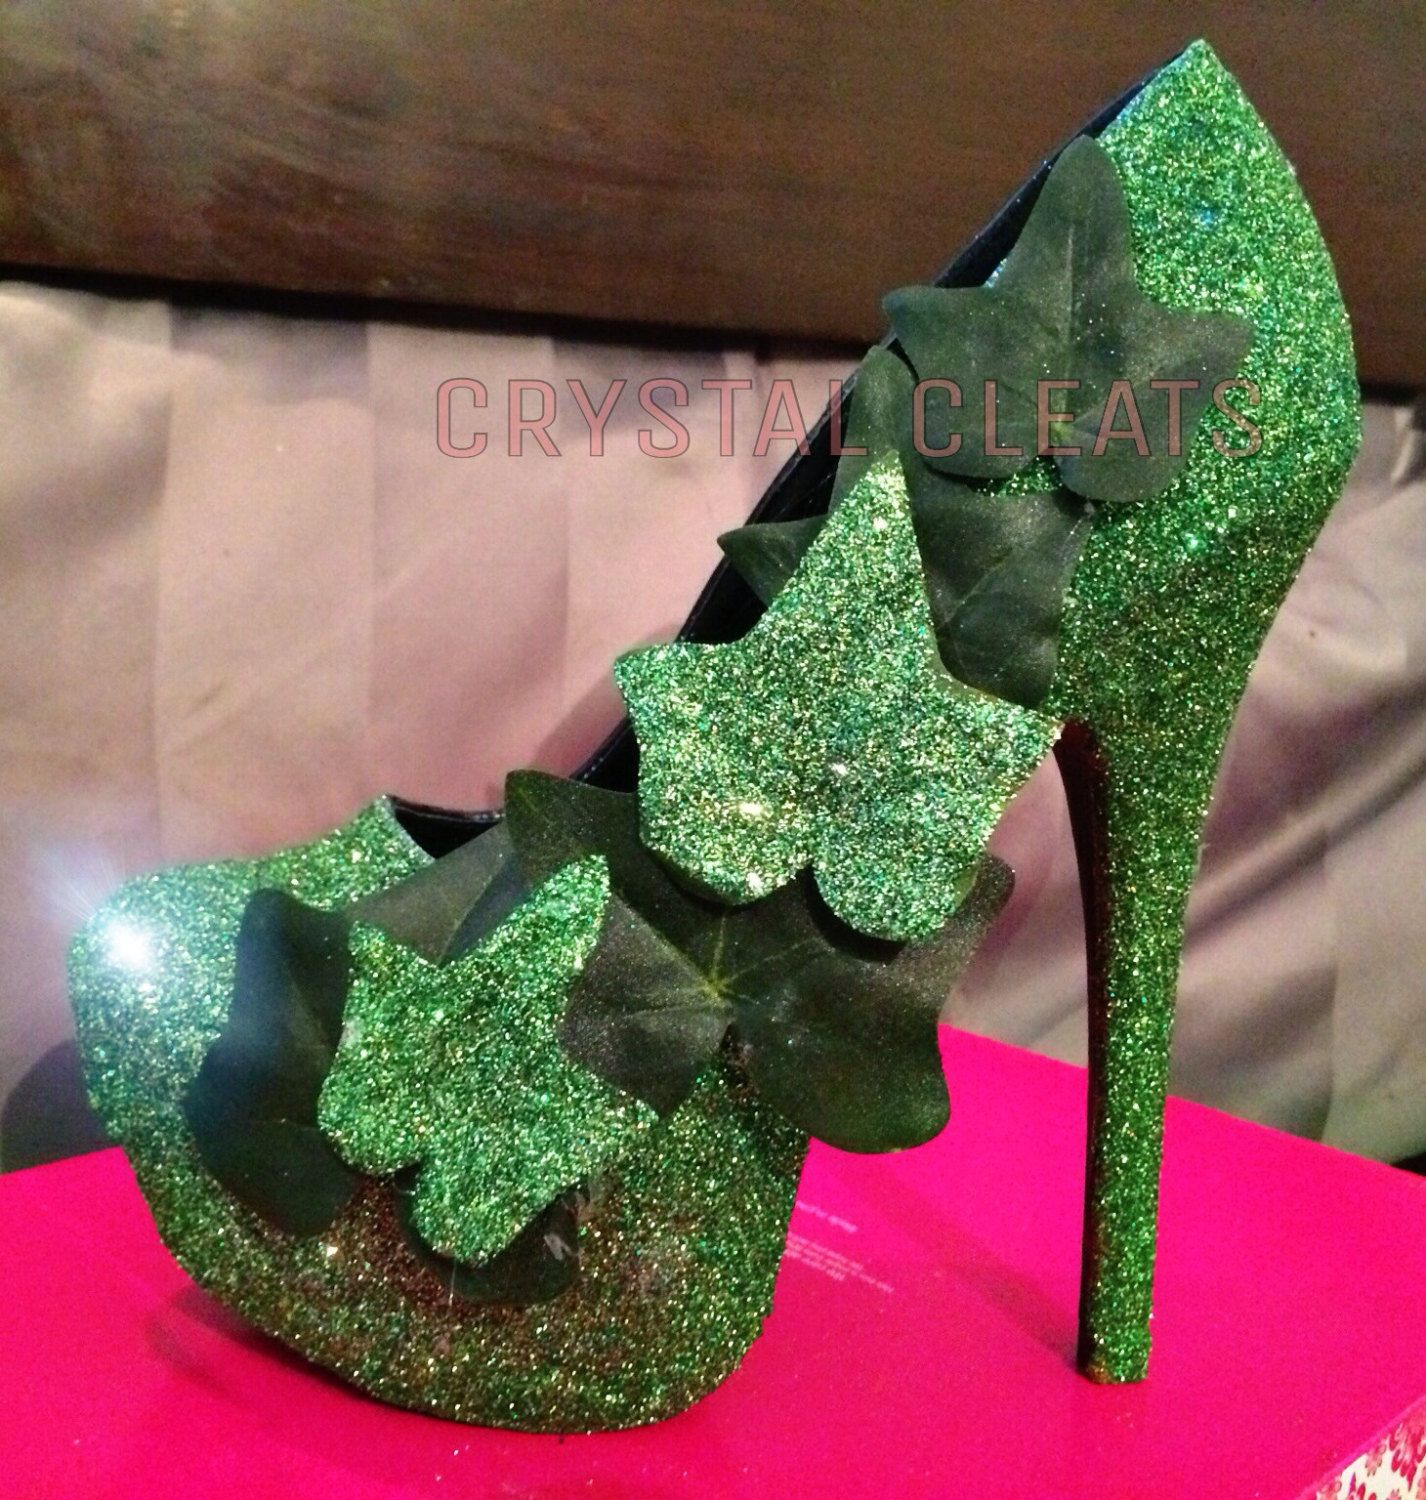 GREEN sparkly glitter eve and Adam or poison IVY high heel stiletto shoes Custom Made  Mardi Gras costume wedding bride stilettos by CrystalCleatss on Etsy COUPON CODE: PINNED10 for $10 off!